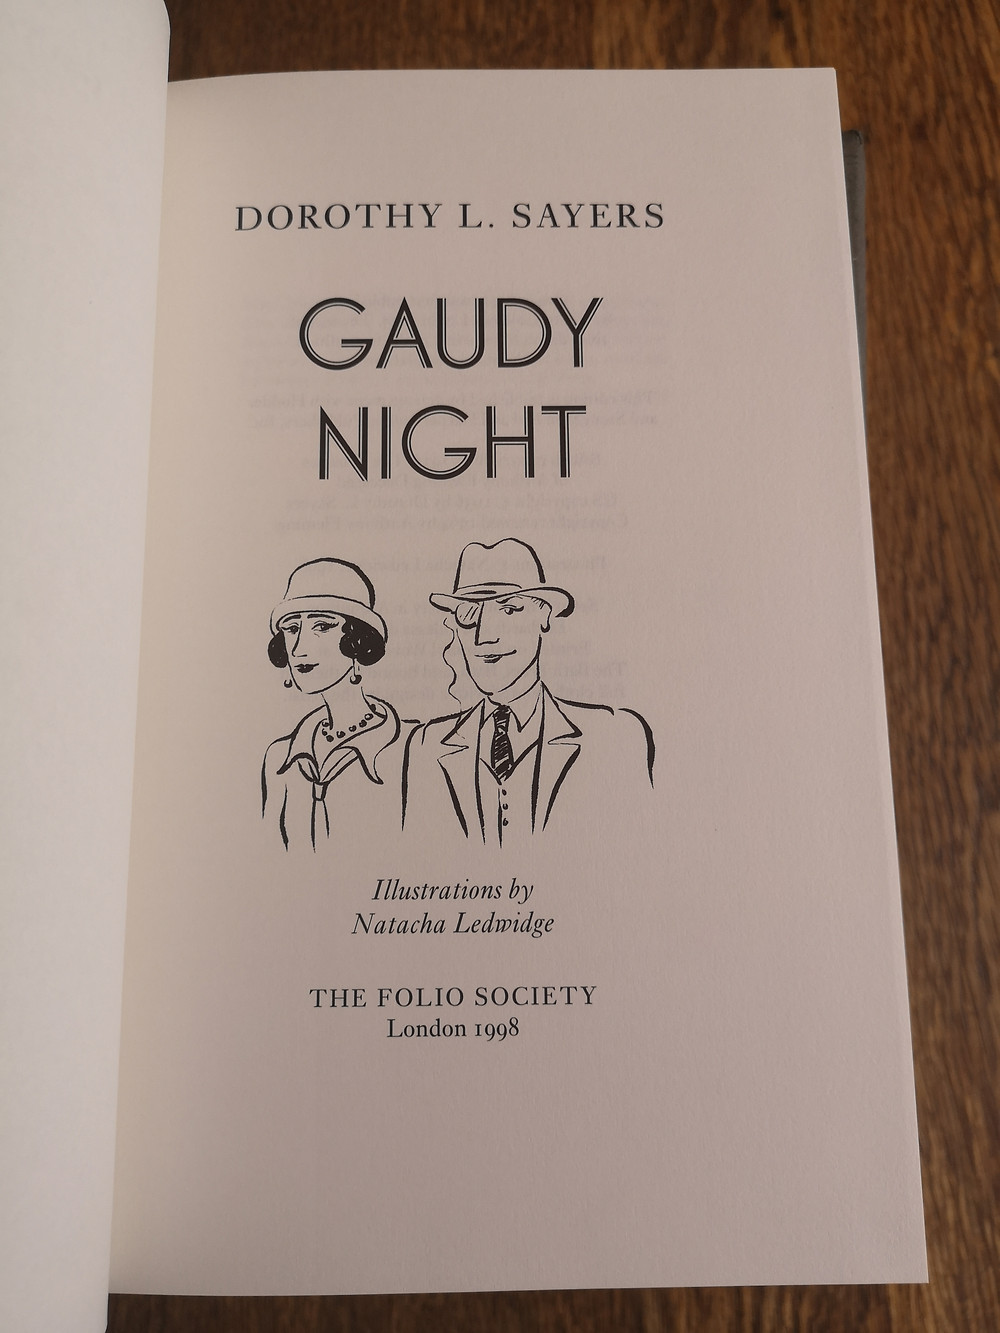 Gaudy Night title page from Folio Society edition